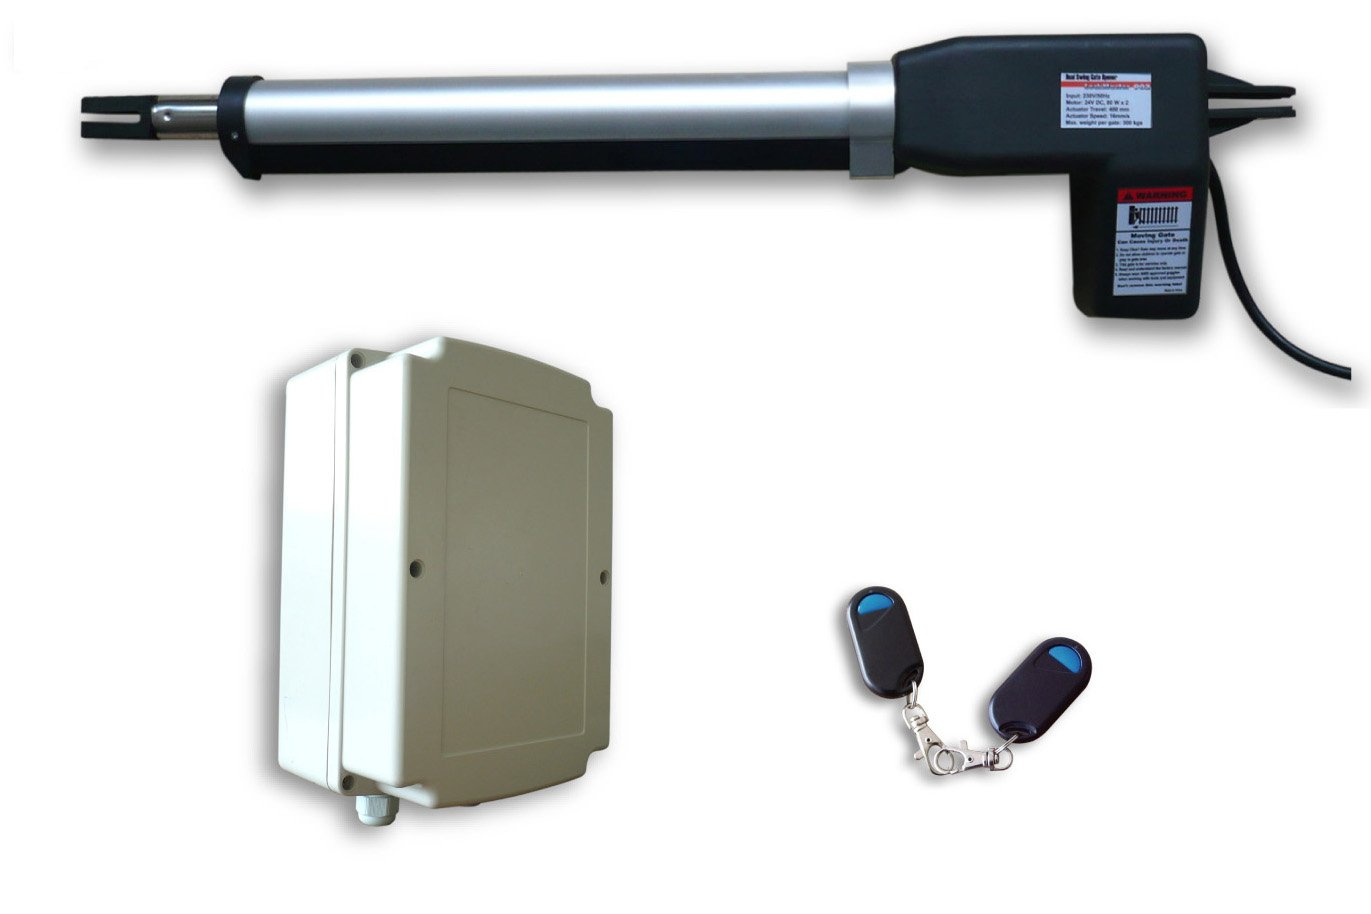 ALEKO AS600 Basic Electric Gate Opener Operator for Single Swing Gate up to 10-feet Long and 660-pounds by ALEKO (Image #1)